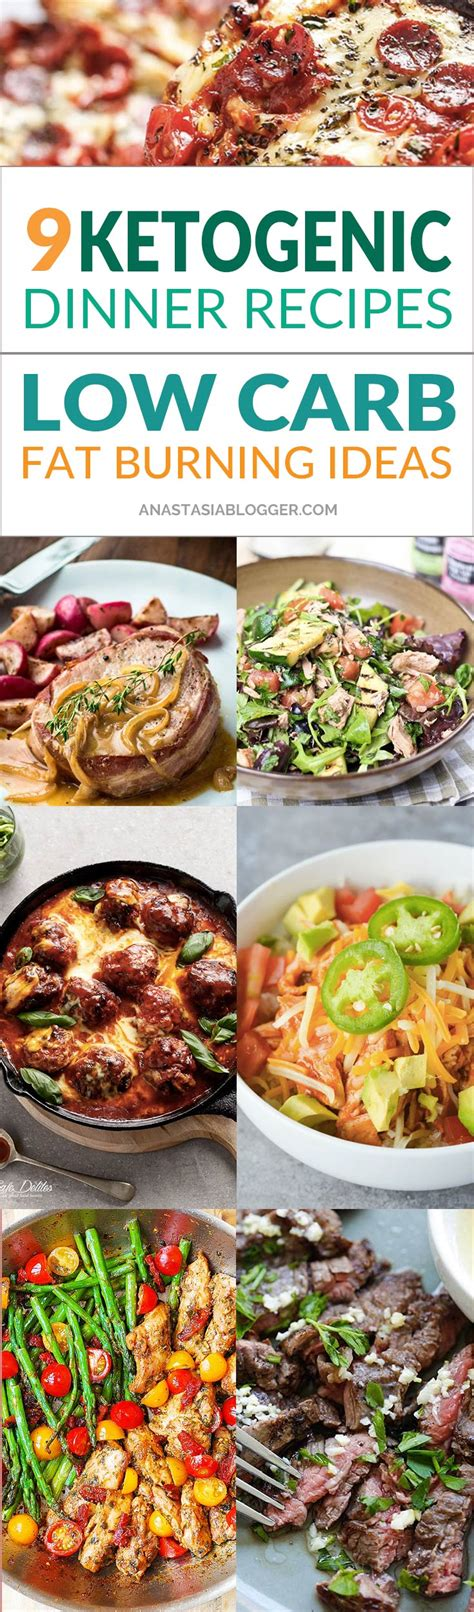 ketogenic bombs delicious bites to boost your energy books 9 easy keto recipes for a burning low carb dinner